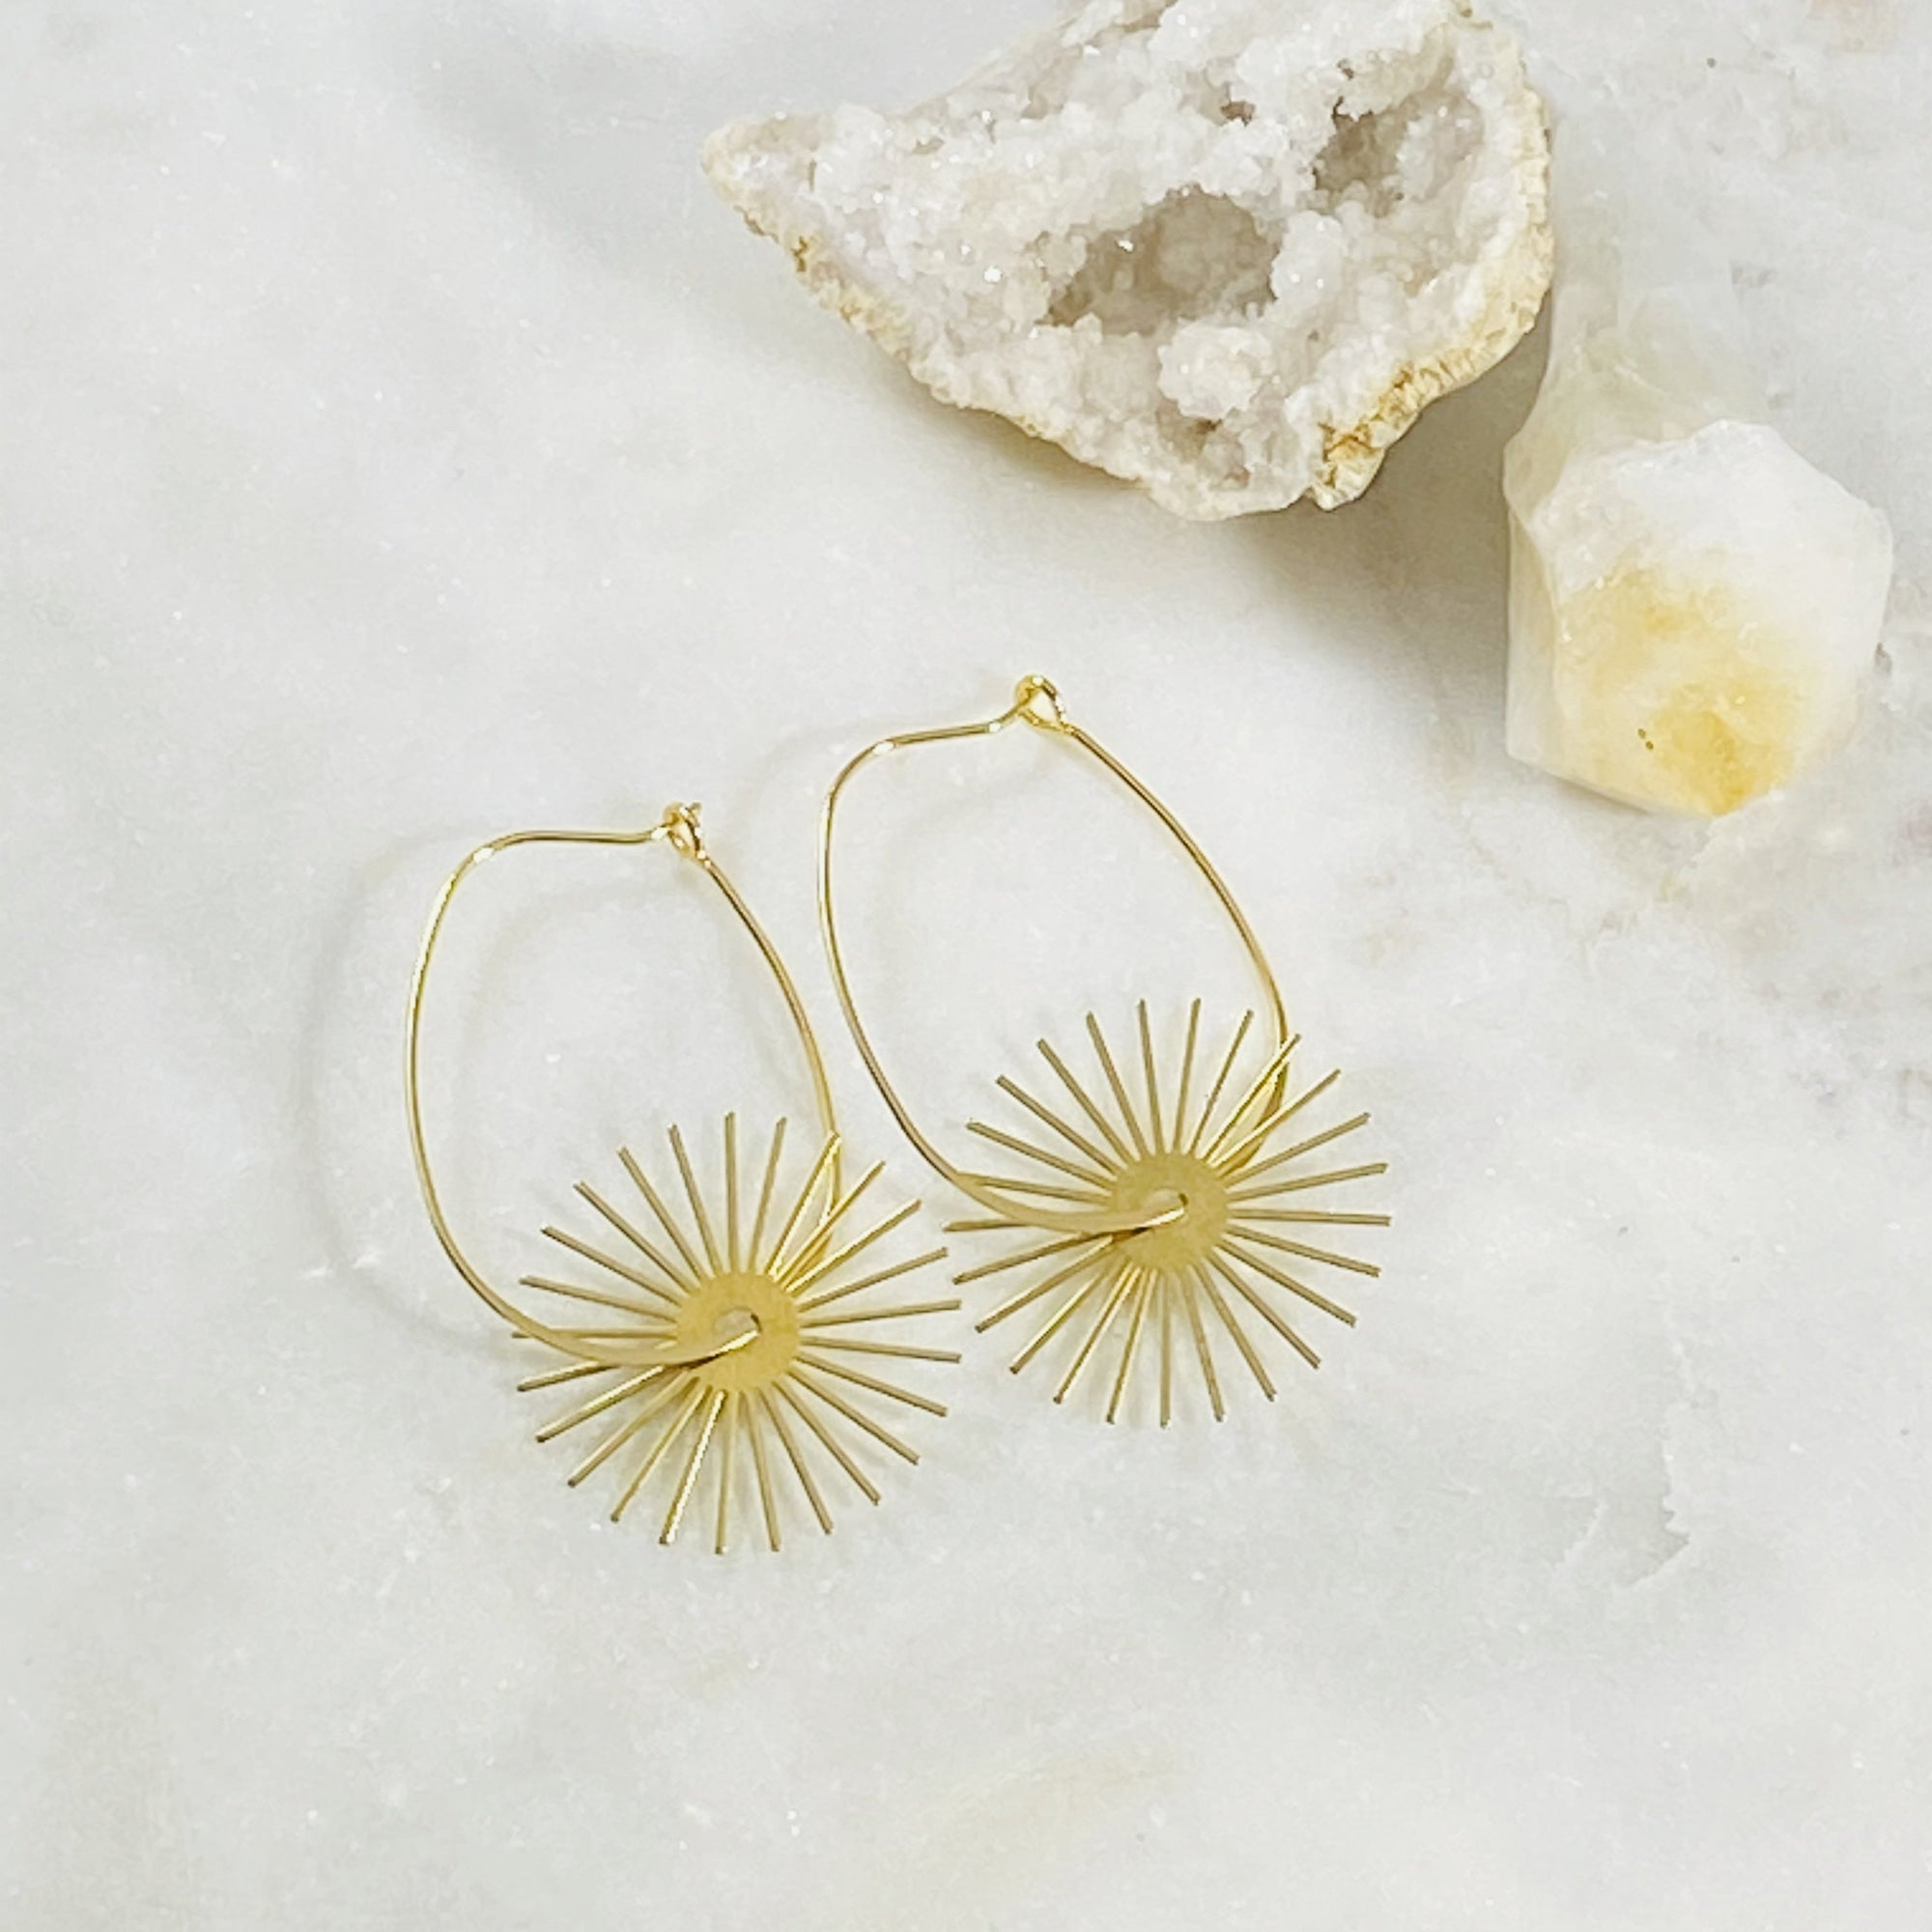 Radiance Hoop Earrings